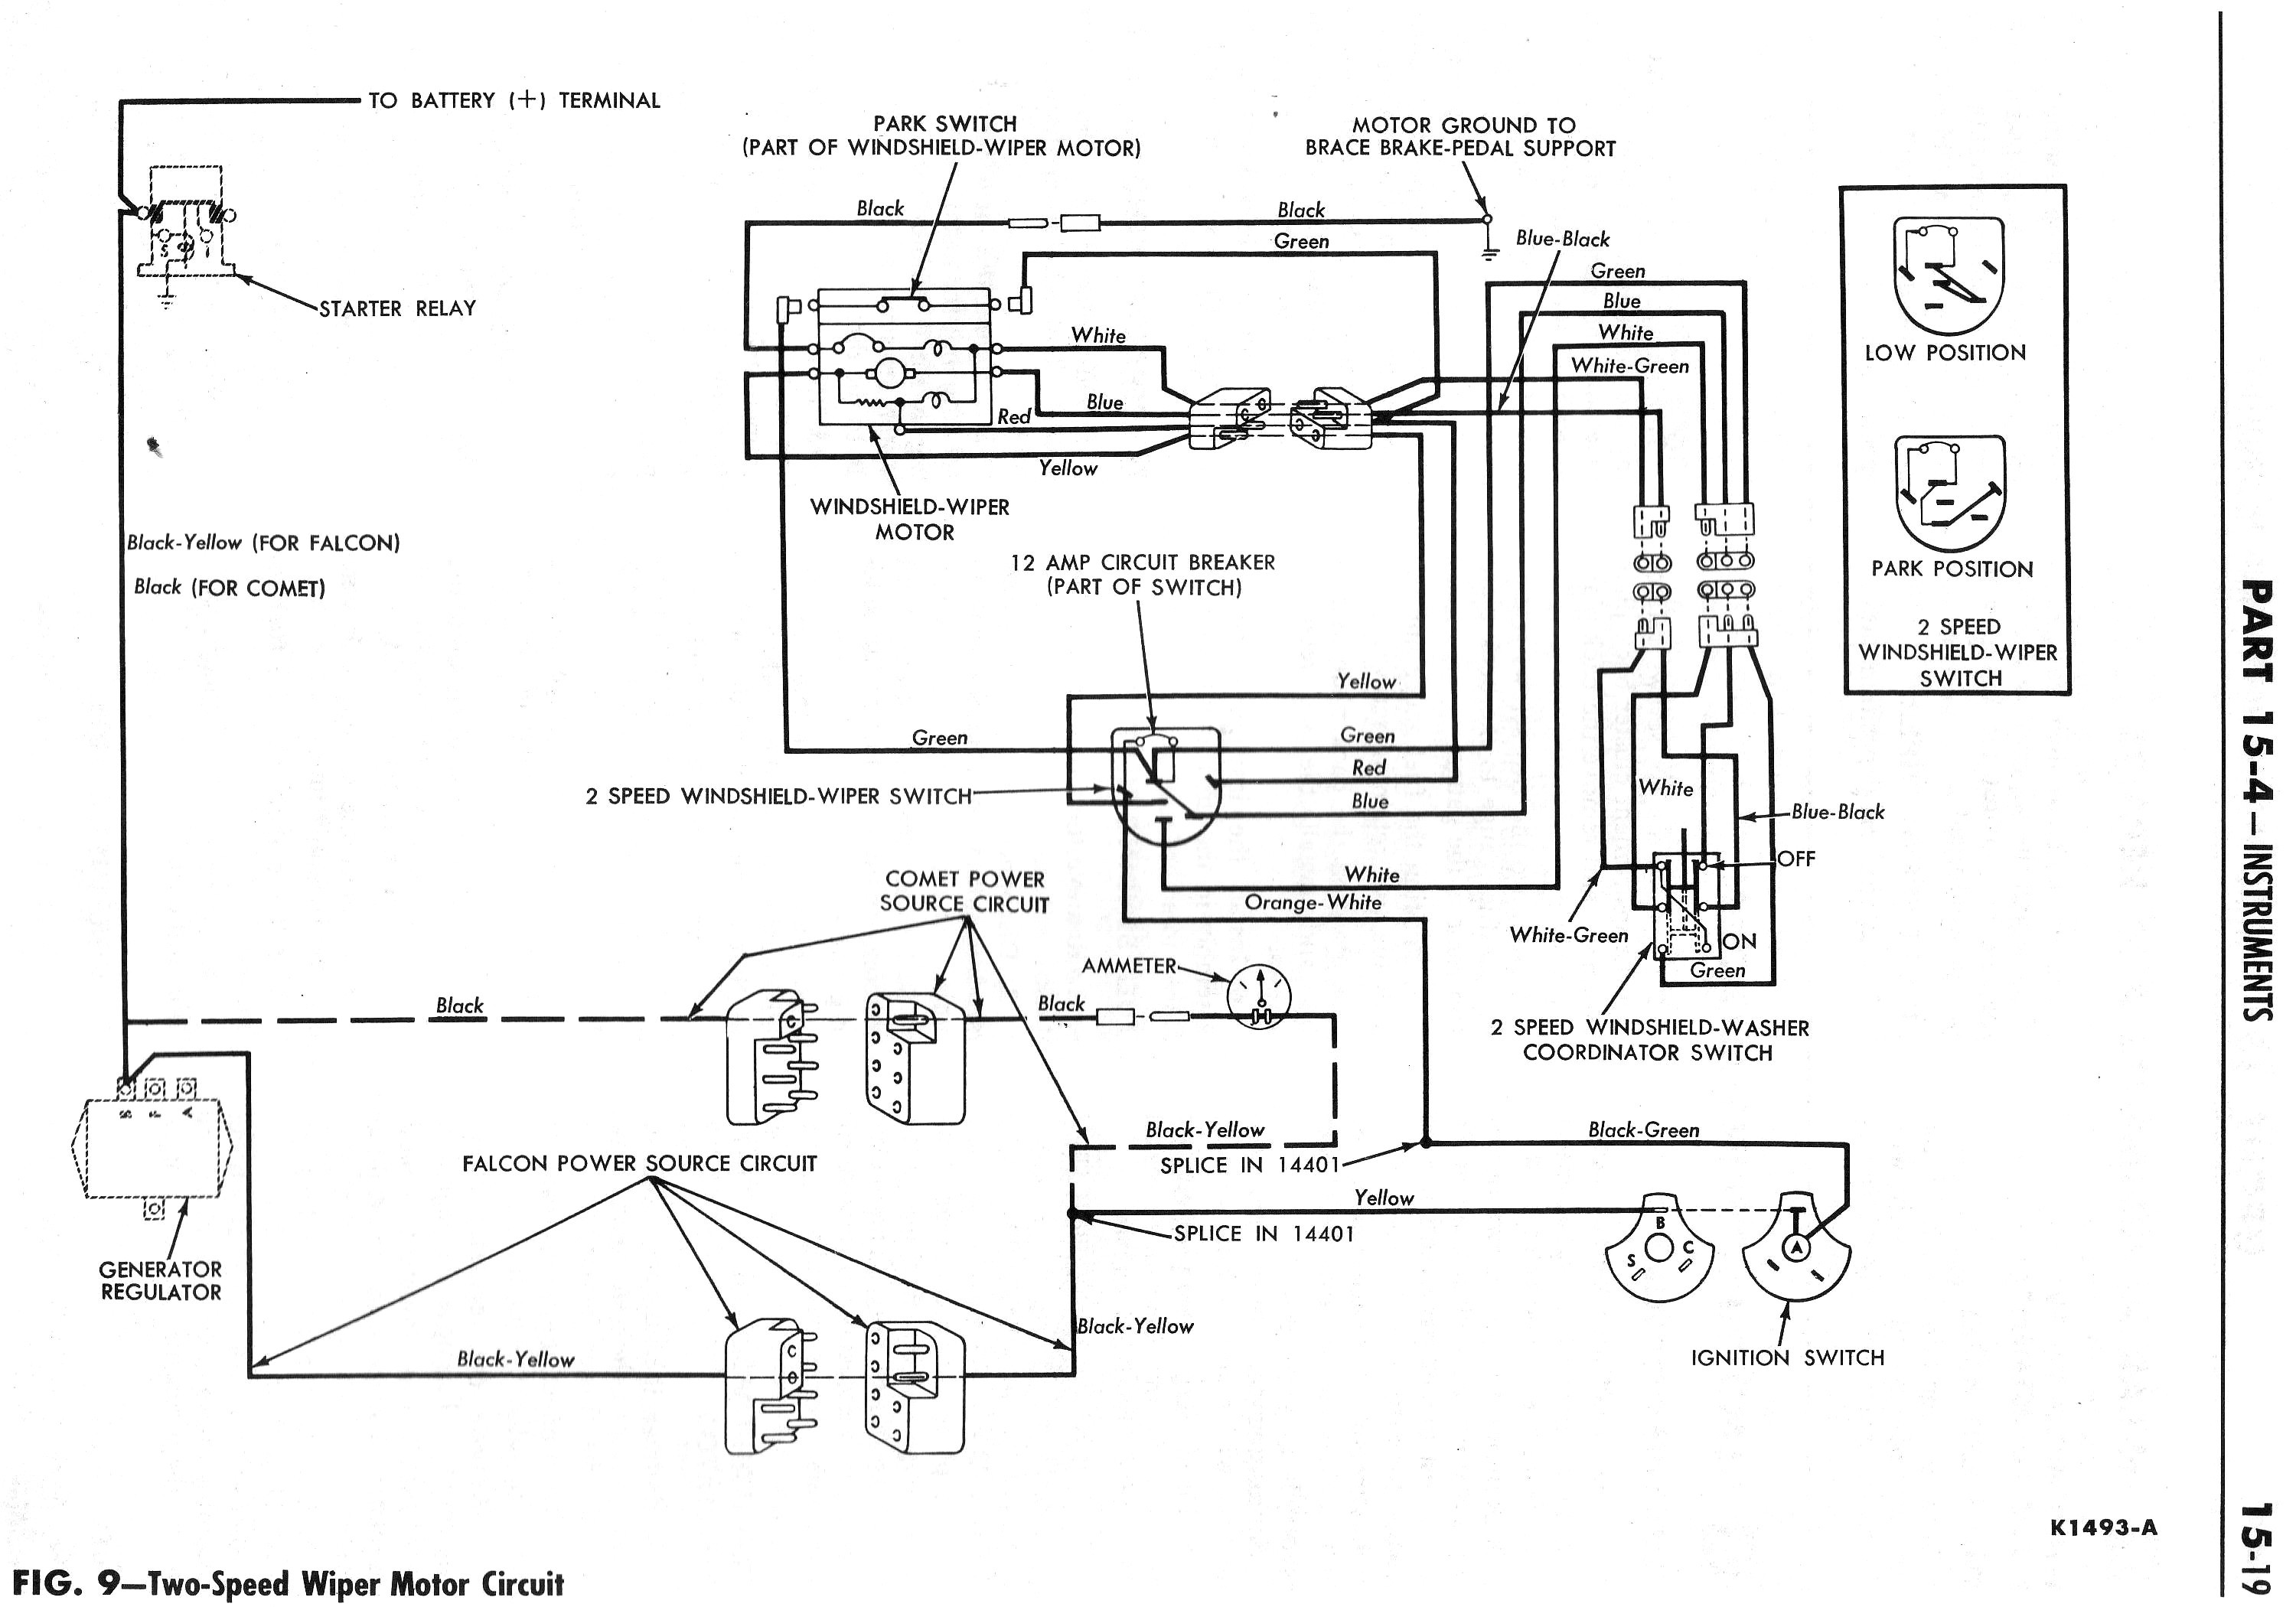 2003 Lincoln Ls V8 Engine Diagram How To Install Replace Spark Plugs 4 6l Wiring 1965 Wire Center Of